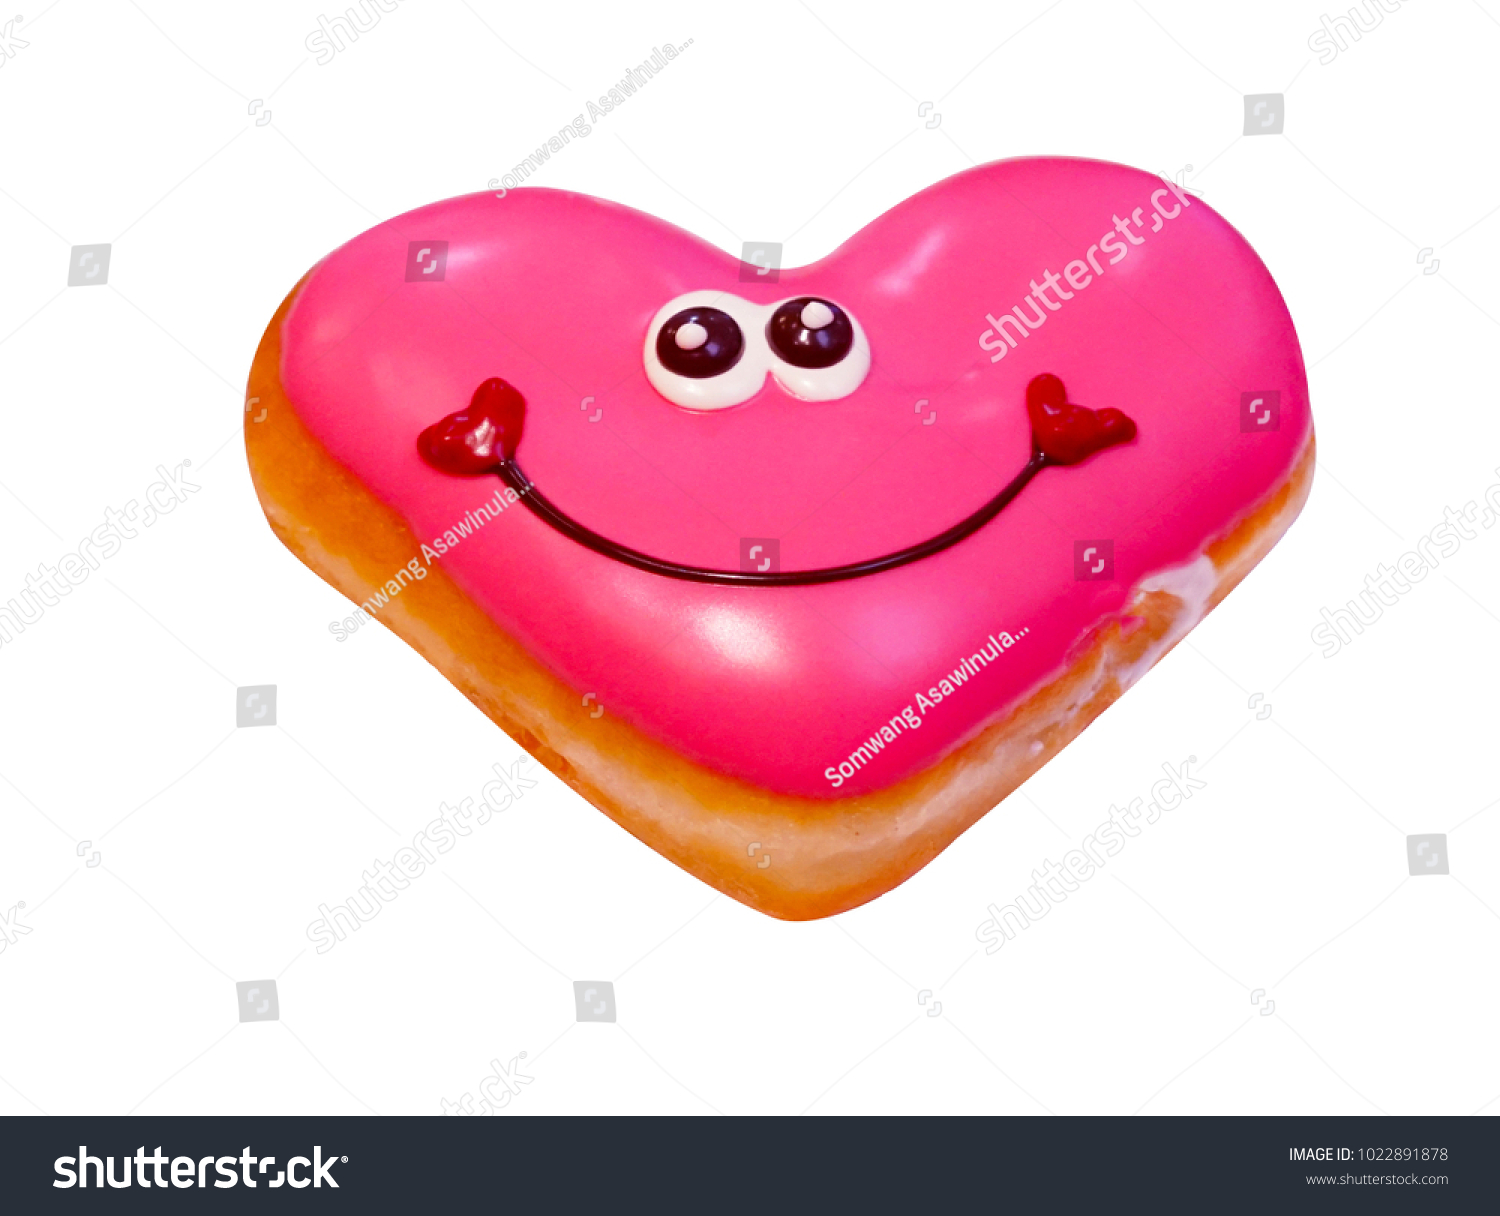 donut love heart valentine white background isolate clipping paths #1022891878